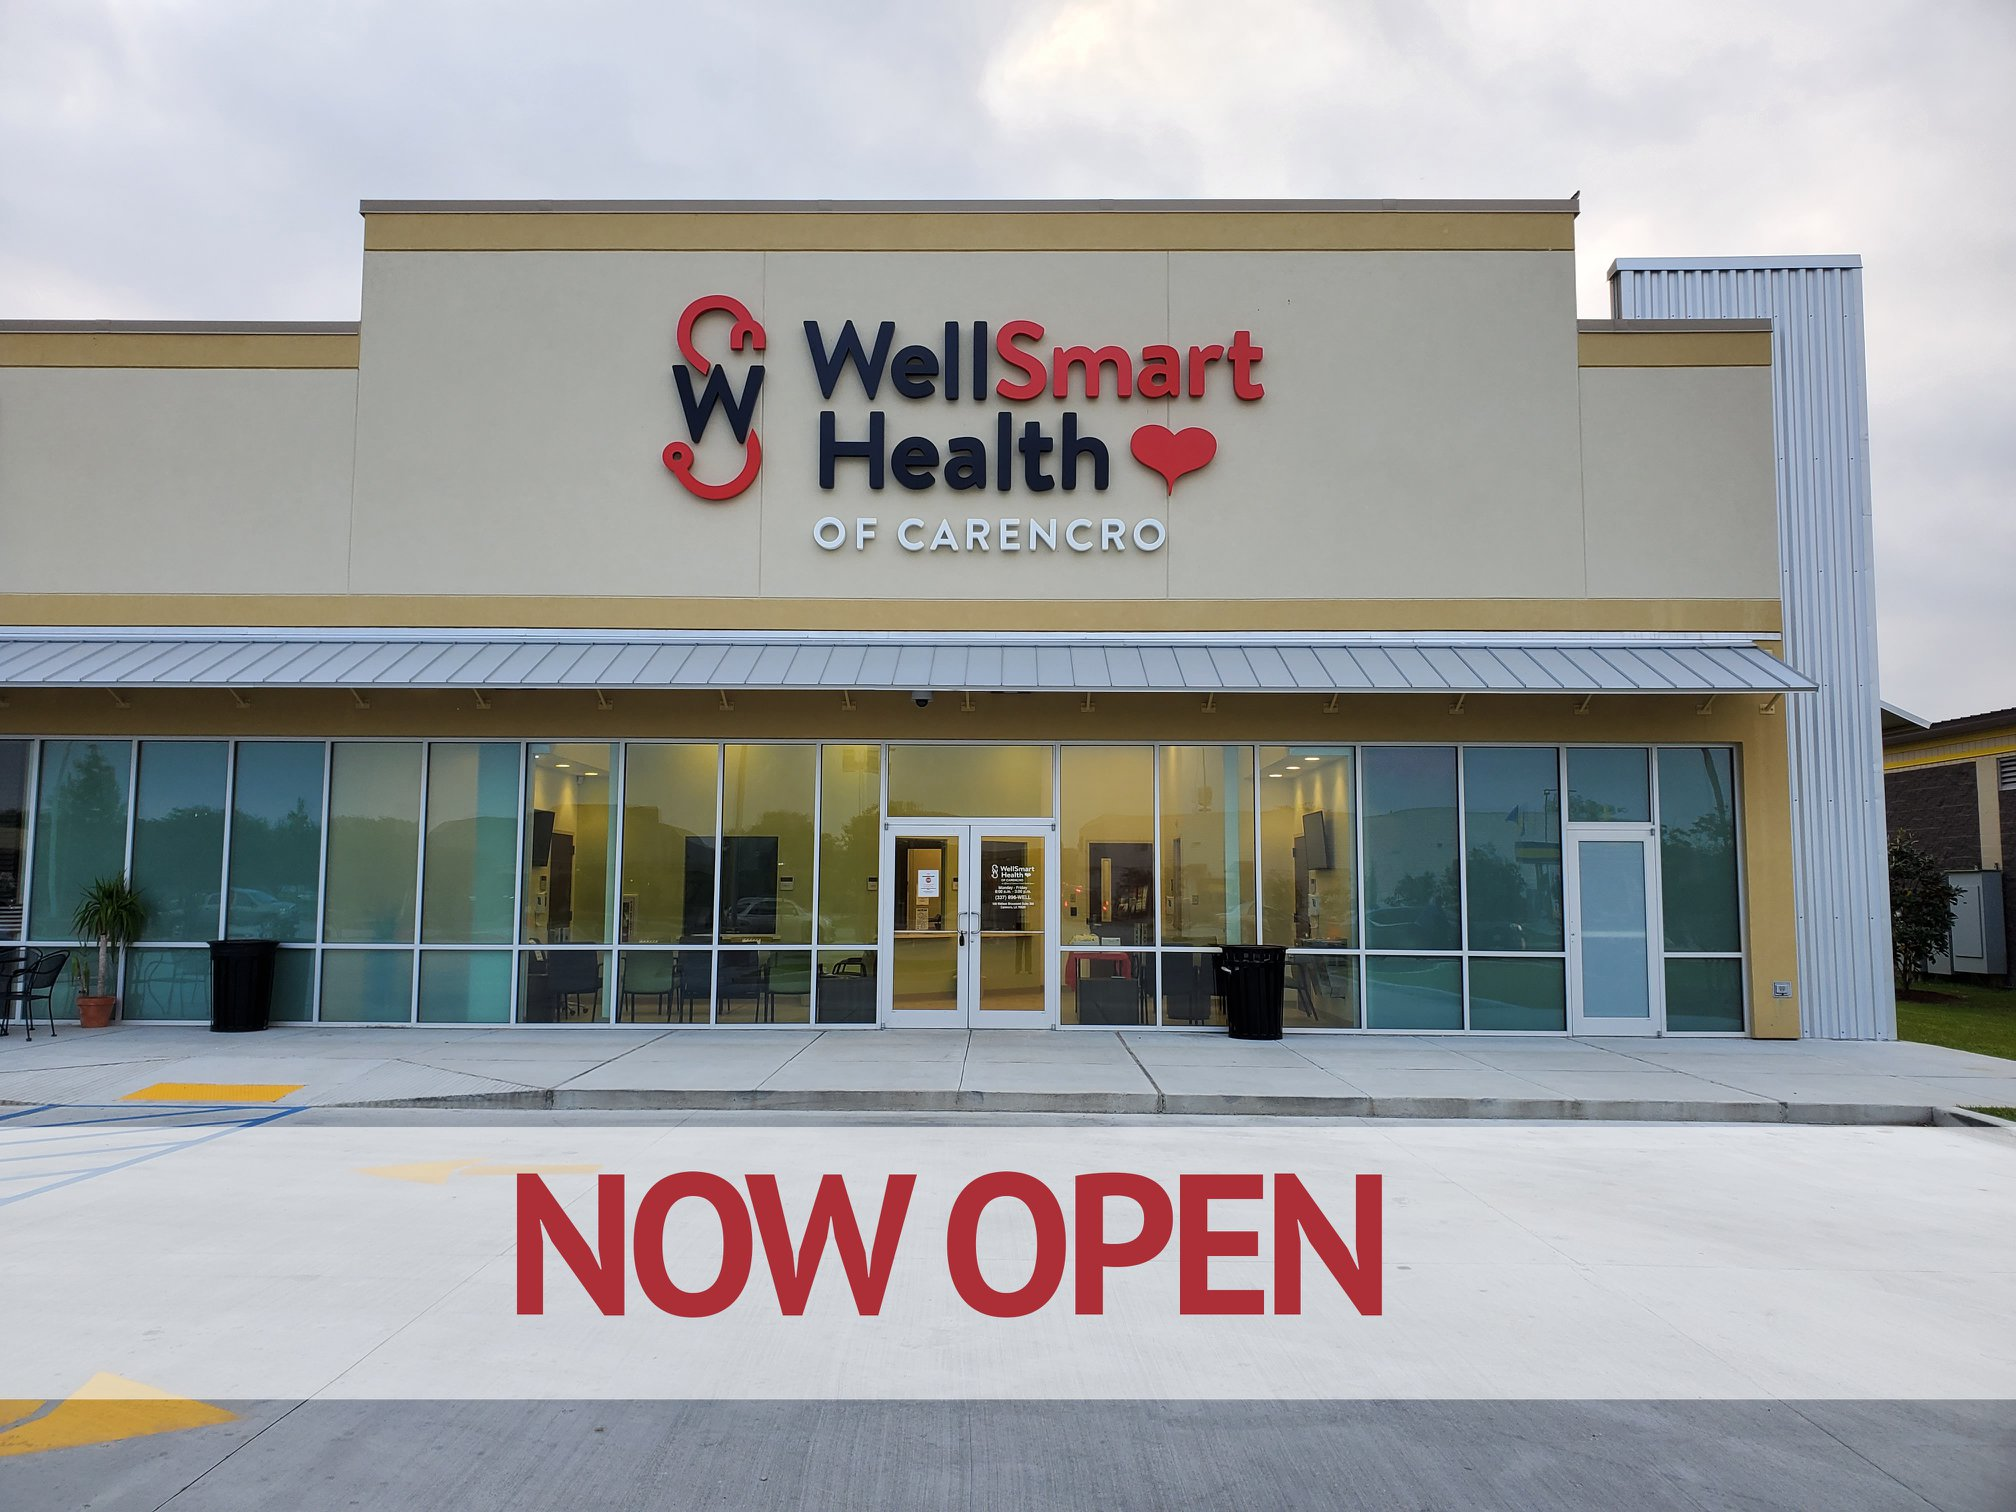 WellSmart Health of Carencro